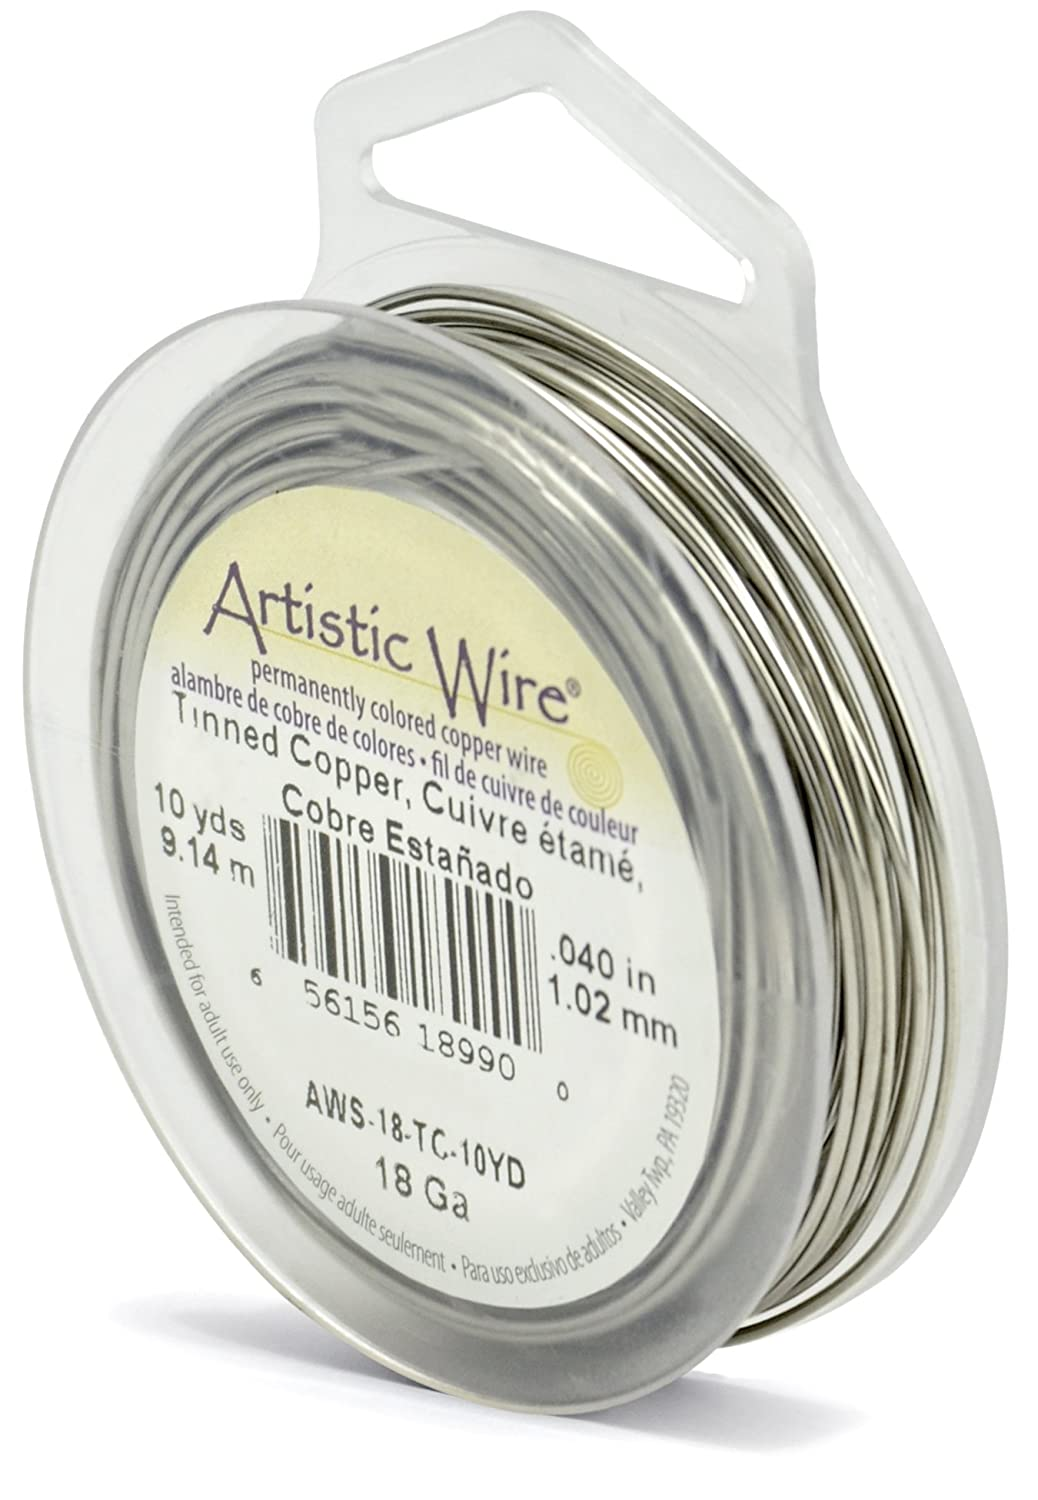 How To Age Copper Wire | Amazon Com Beadalon Artistic Wire 18 Gauge Tinned Copper Wire 10 Yards